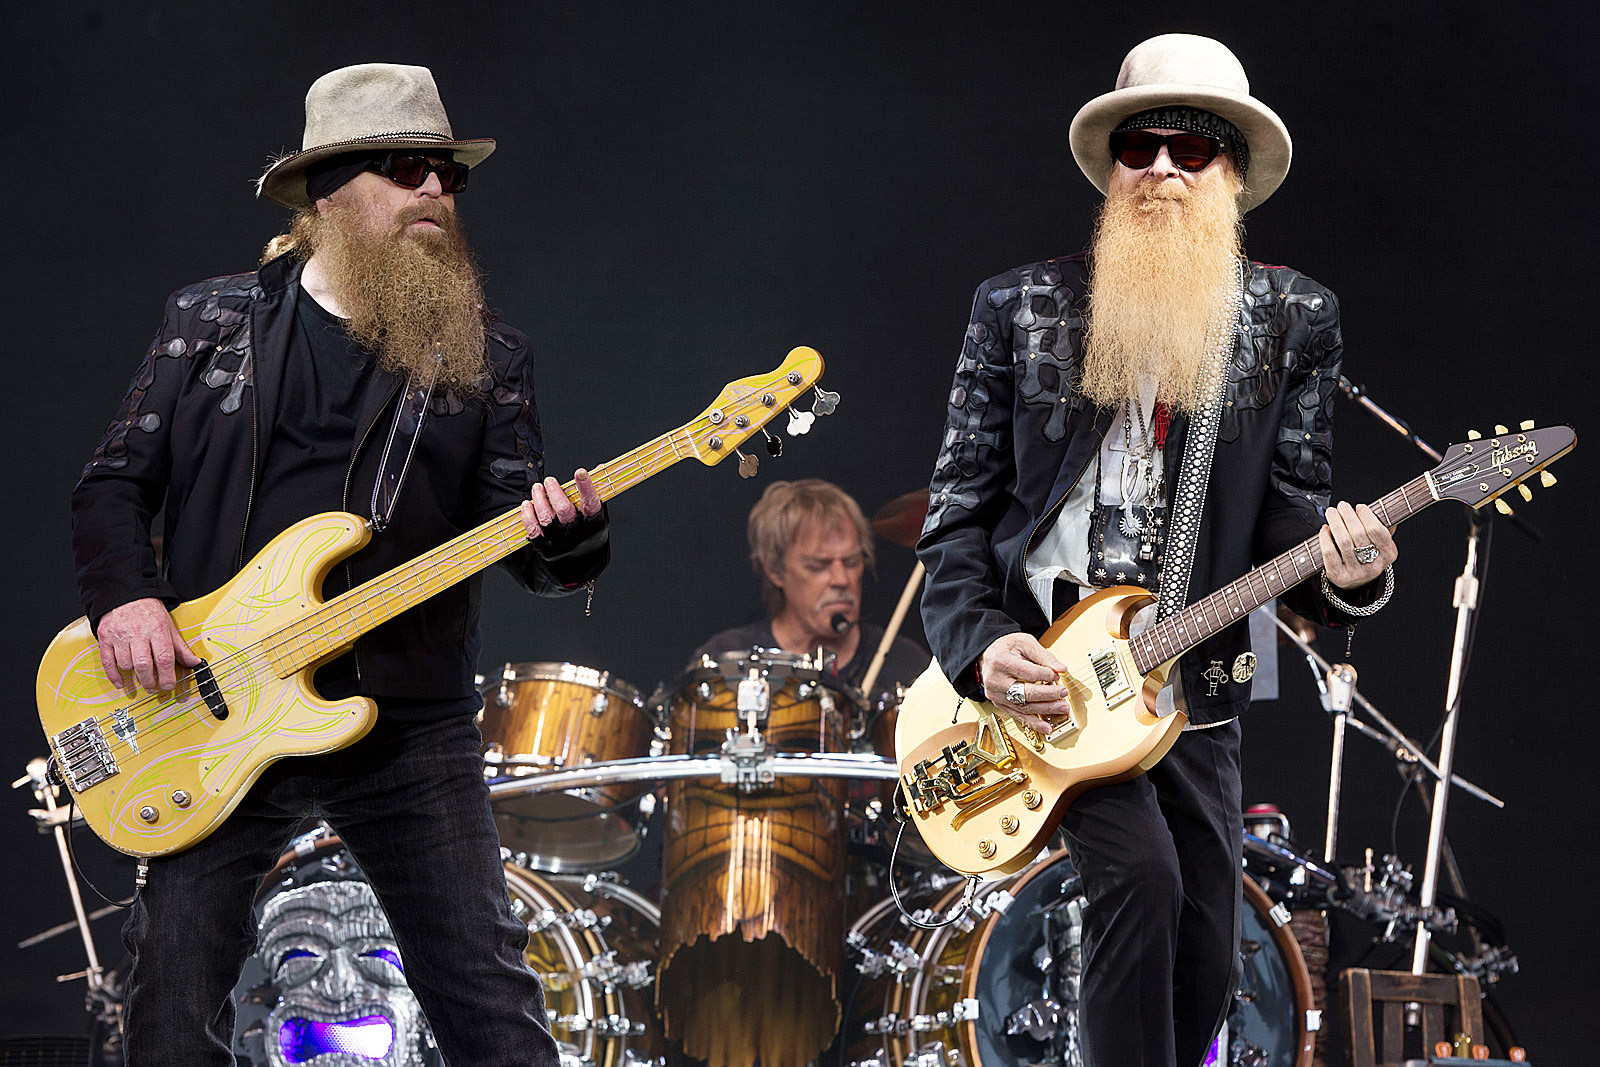 Best Soundtracks 2020 ZZ Top to Open 'Sharp Dressed Man' Musical in 2020